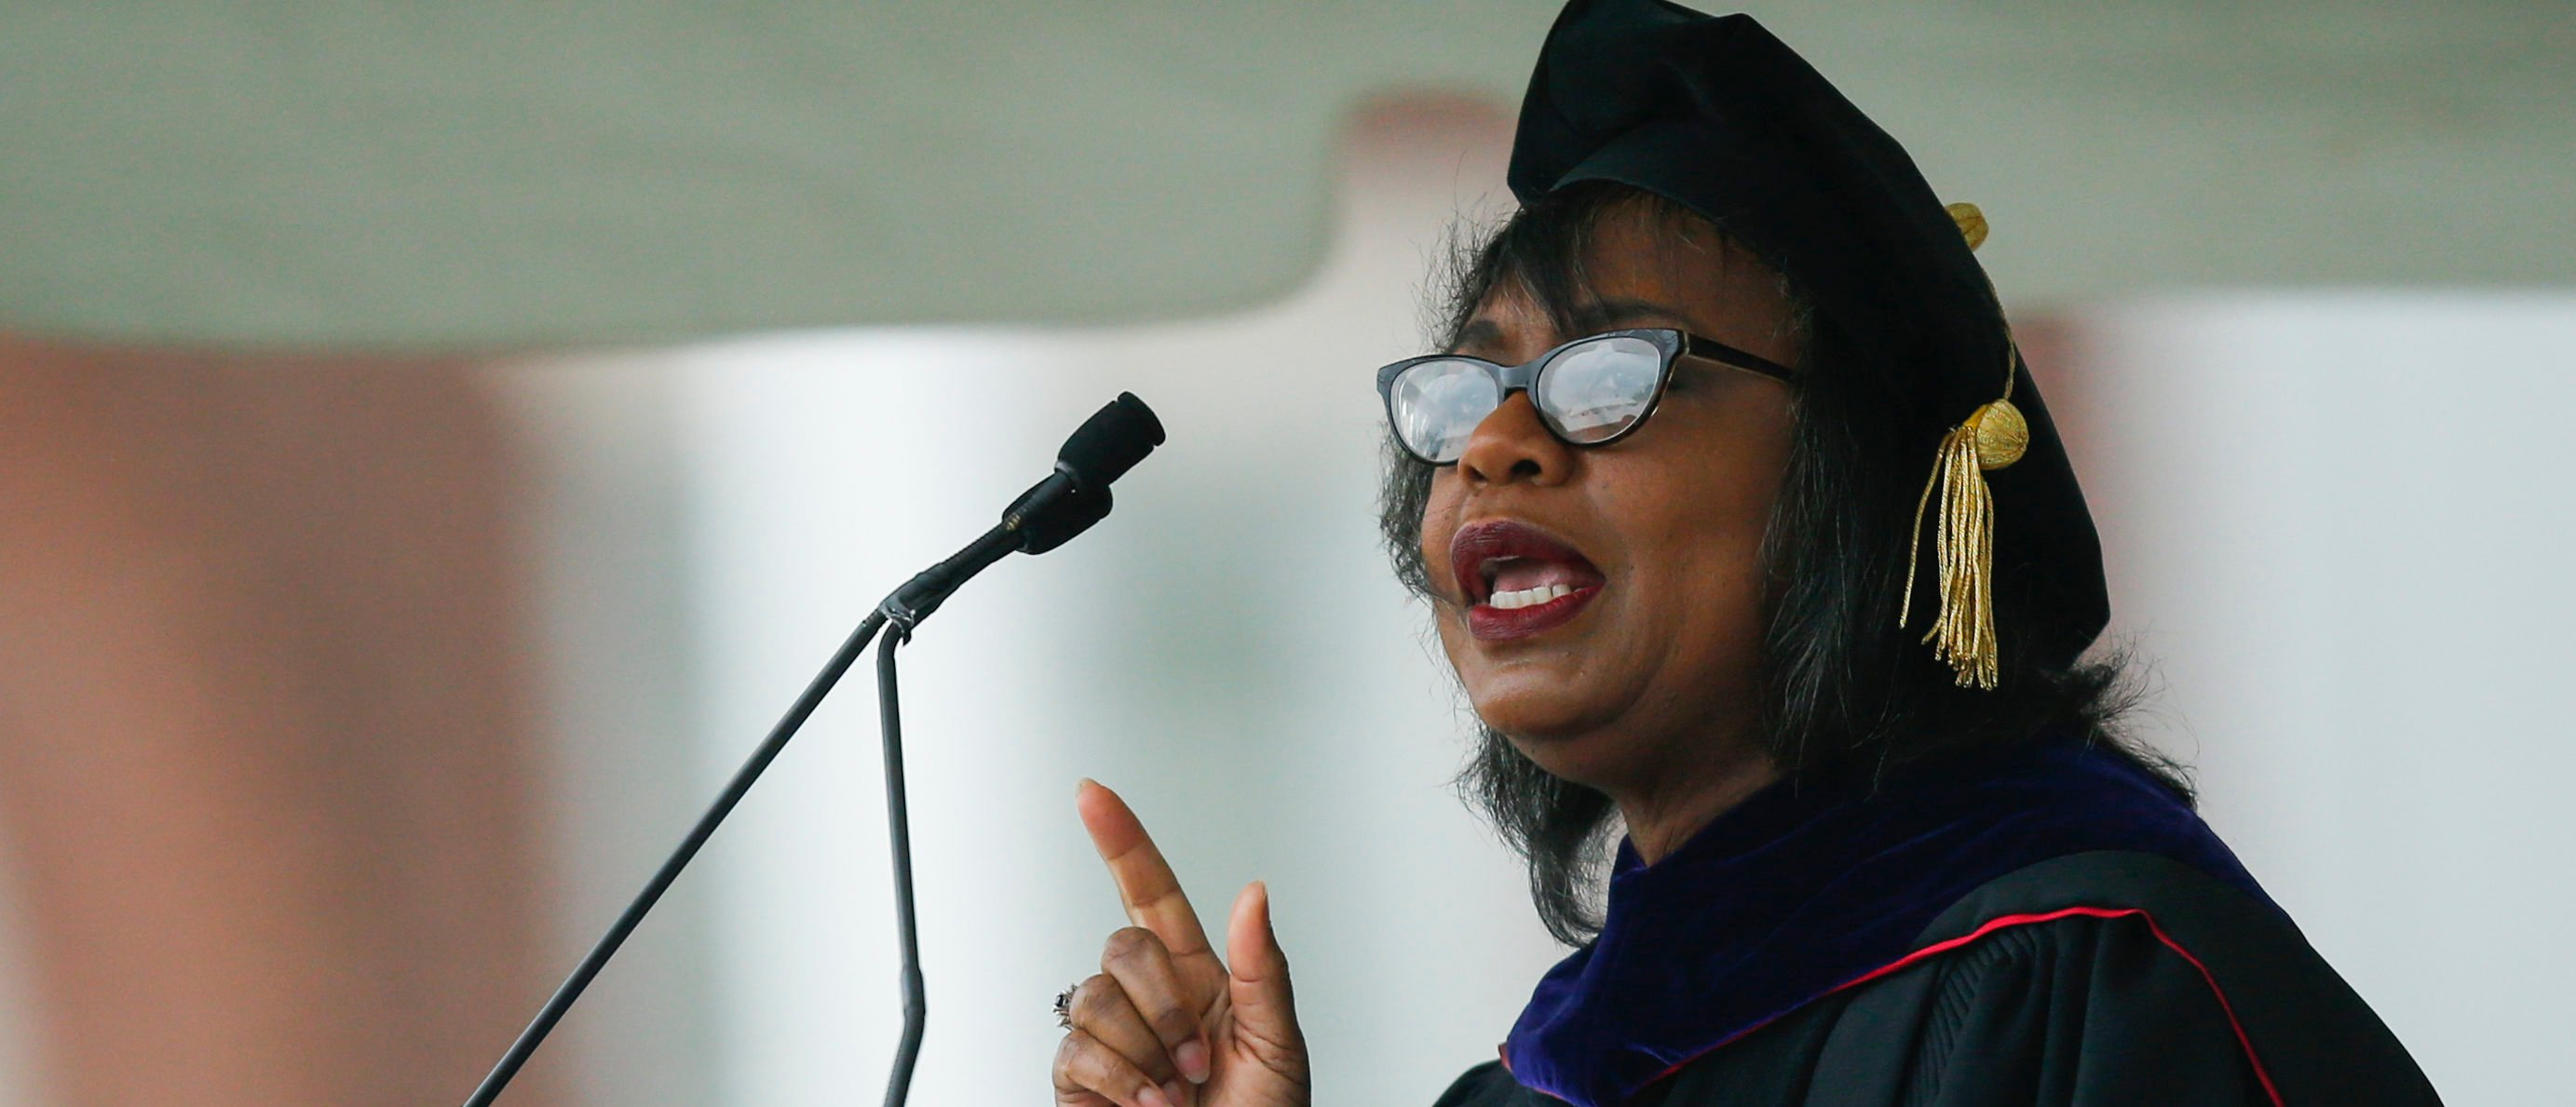 MIDDLETOWN, CT - MAY 27: Law professor Anita Hill speaks at the commencement ceremony at Wesleyan University on May 27, 2018 in Middletown, Connecticut. (Photo by Eduardo Munoz Alvarez/Getty Images)